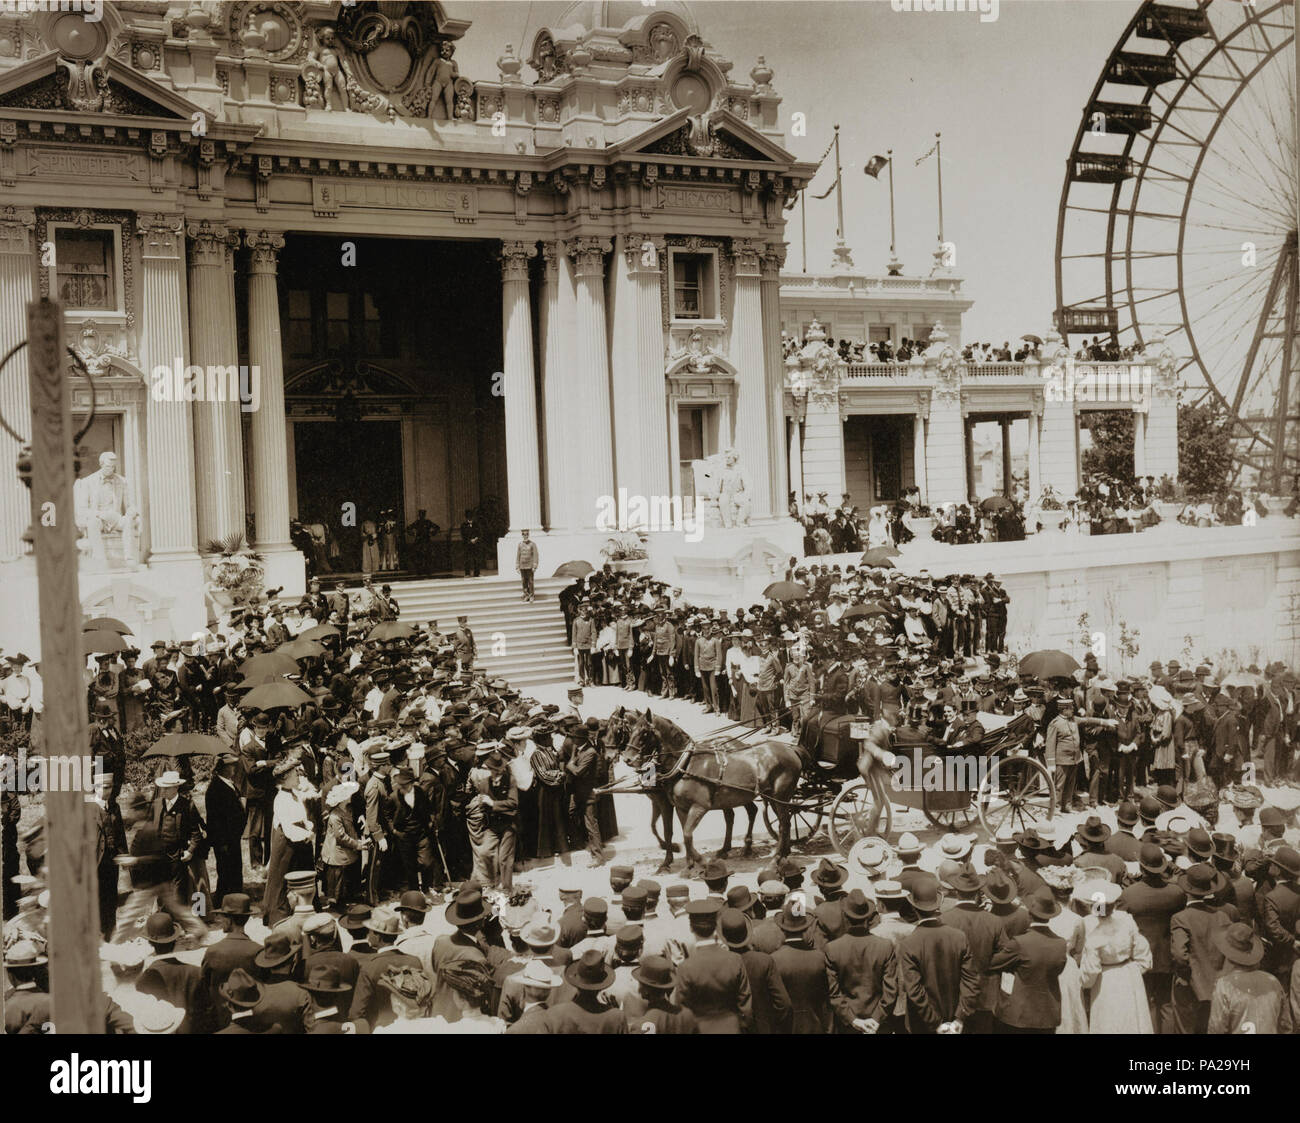 378 Dedication of the Illinois State Building at the 1904 World's Fair - Stock Image